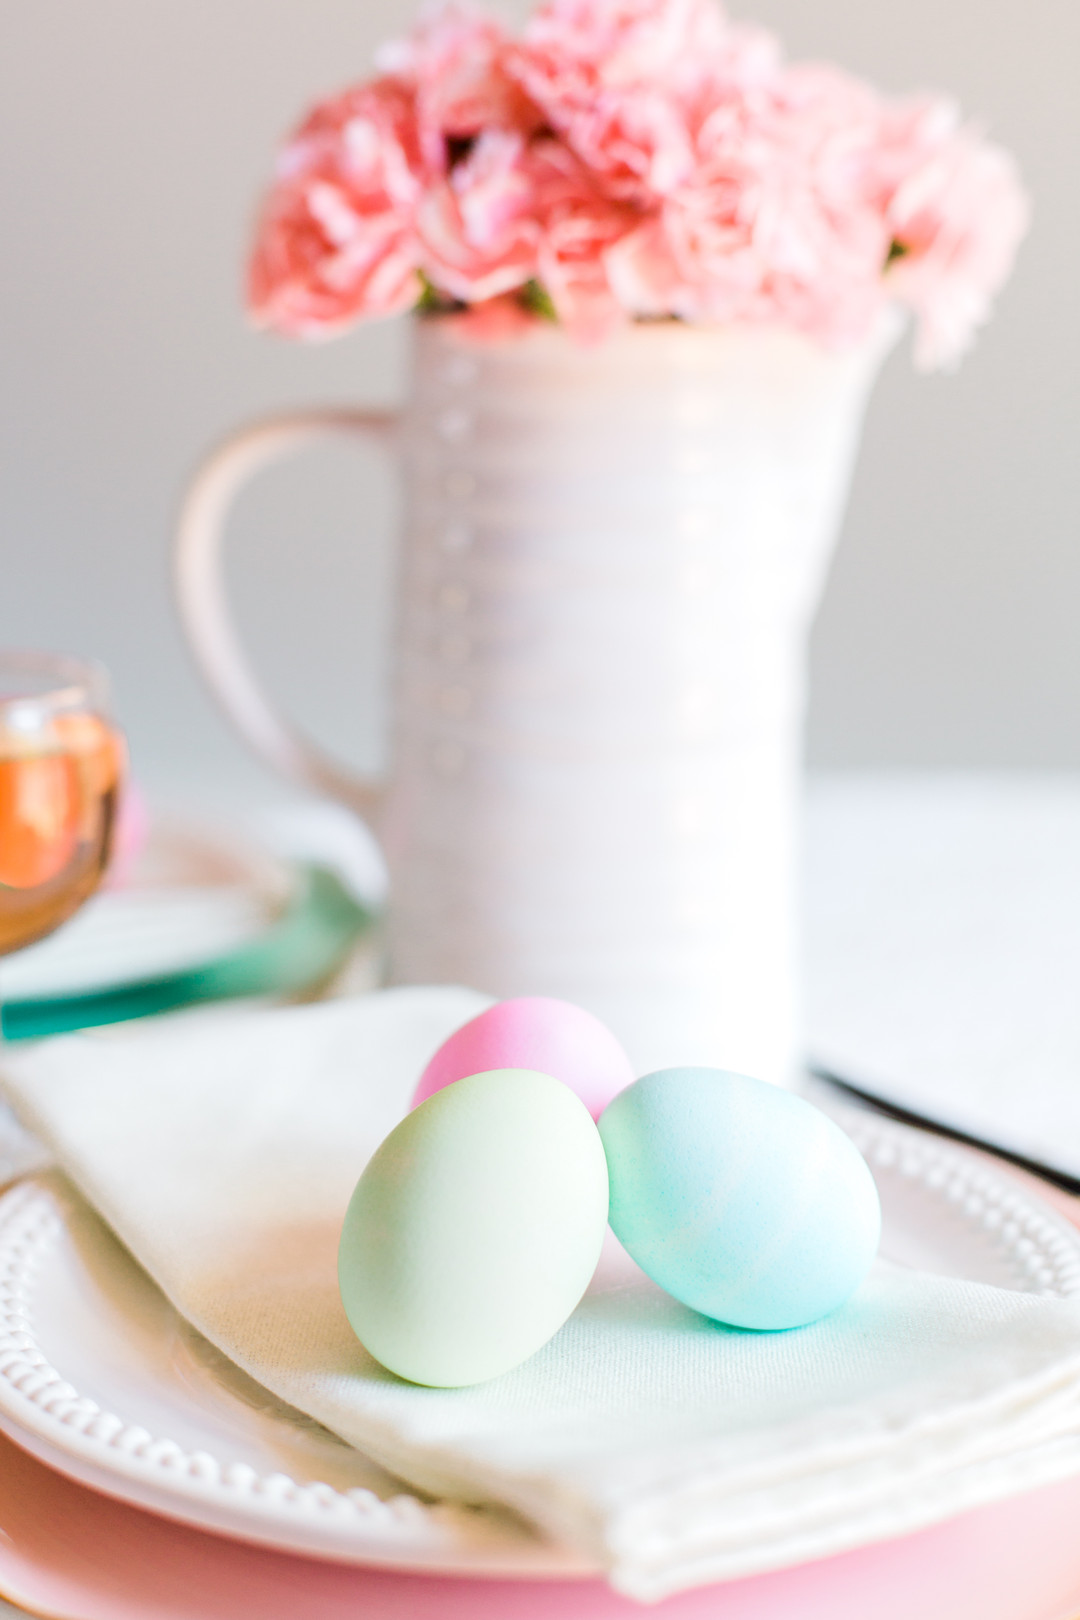 Staal_KristinaStaalPhotography_KristinaStaalPhotographyEasterTablescape201612_big Easy Entertaining: Easter Brunch Inspiration for Two